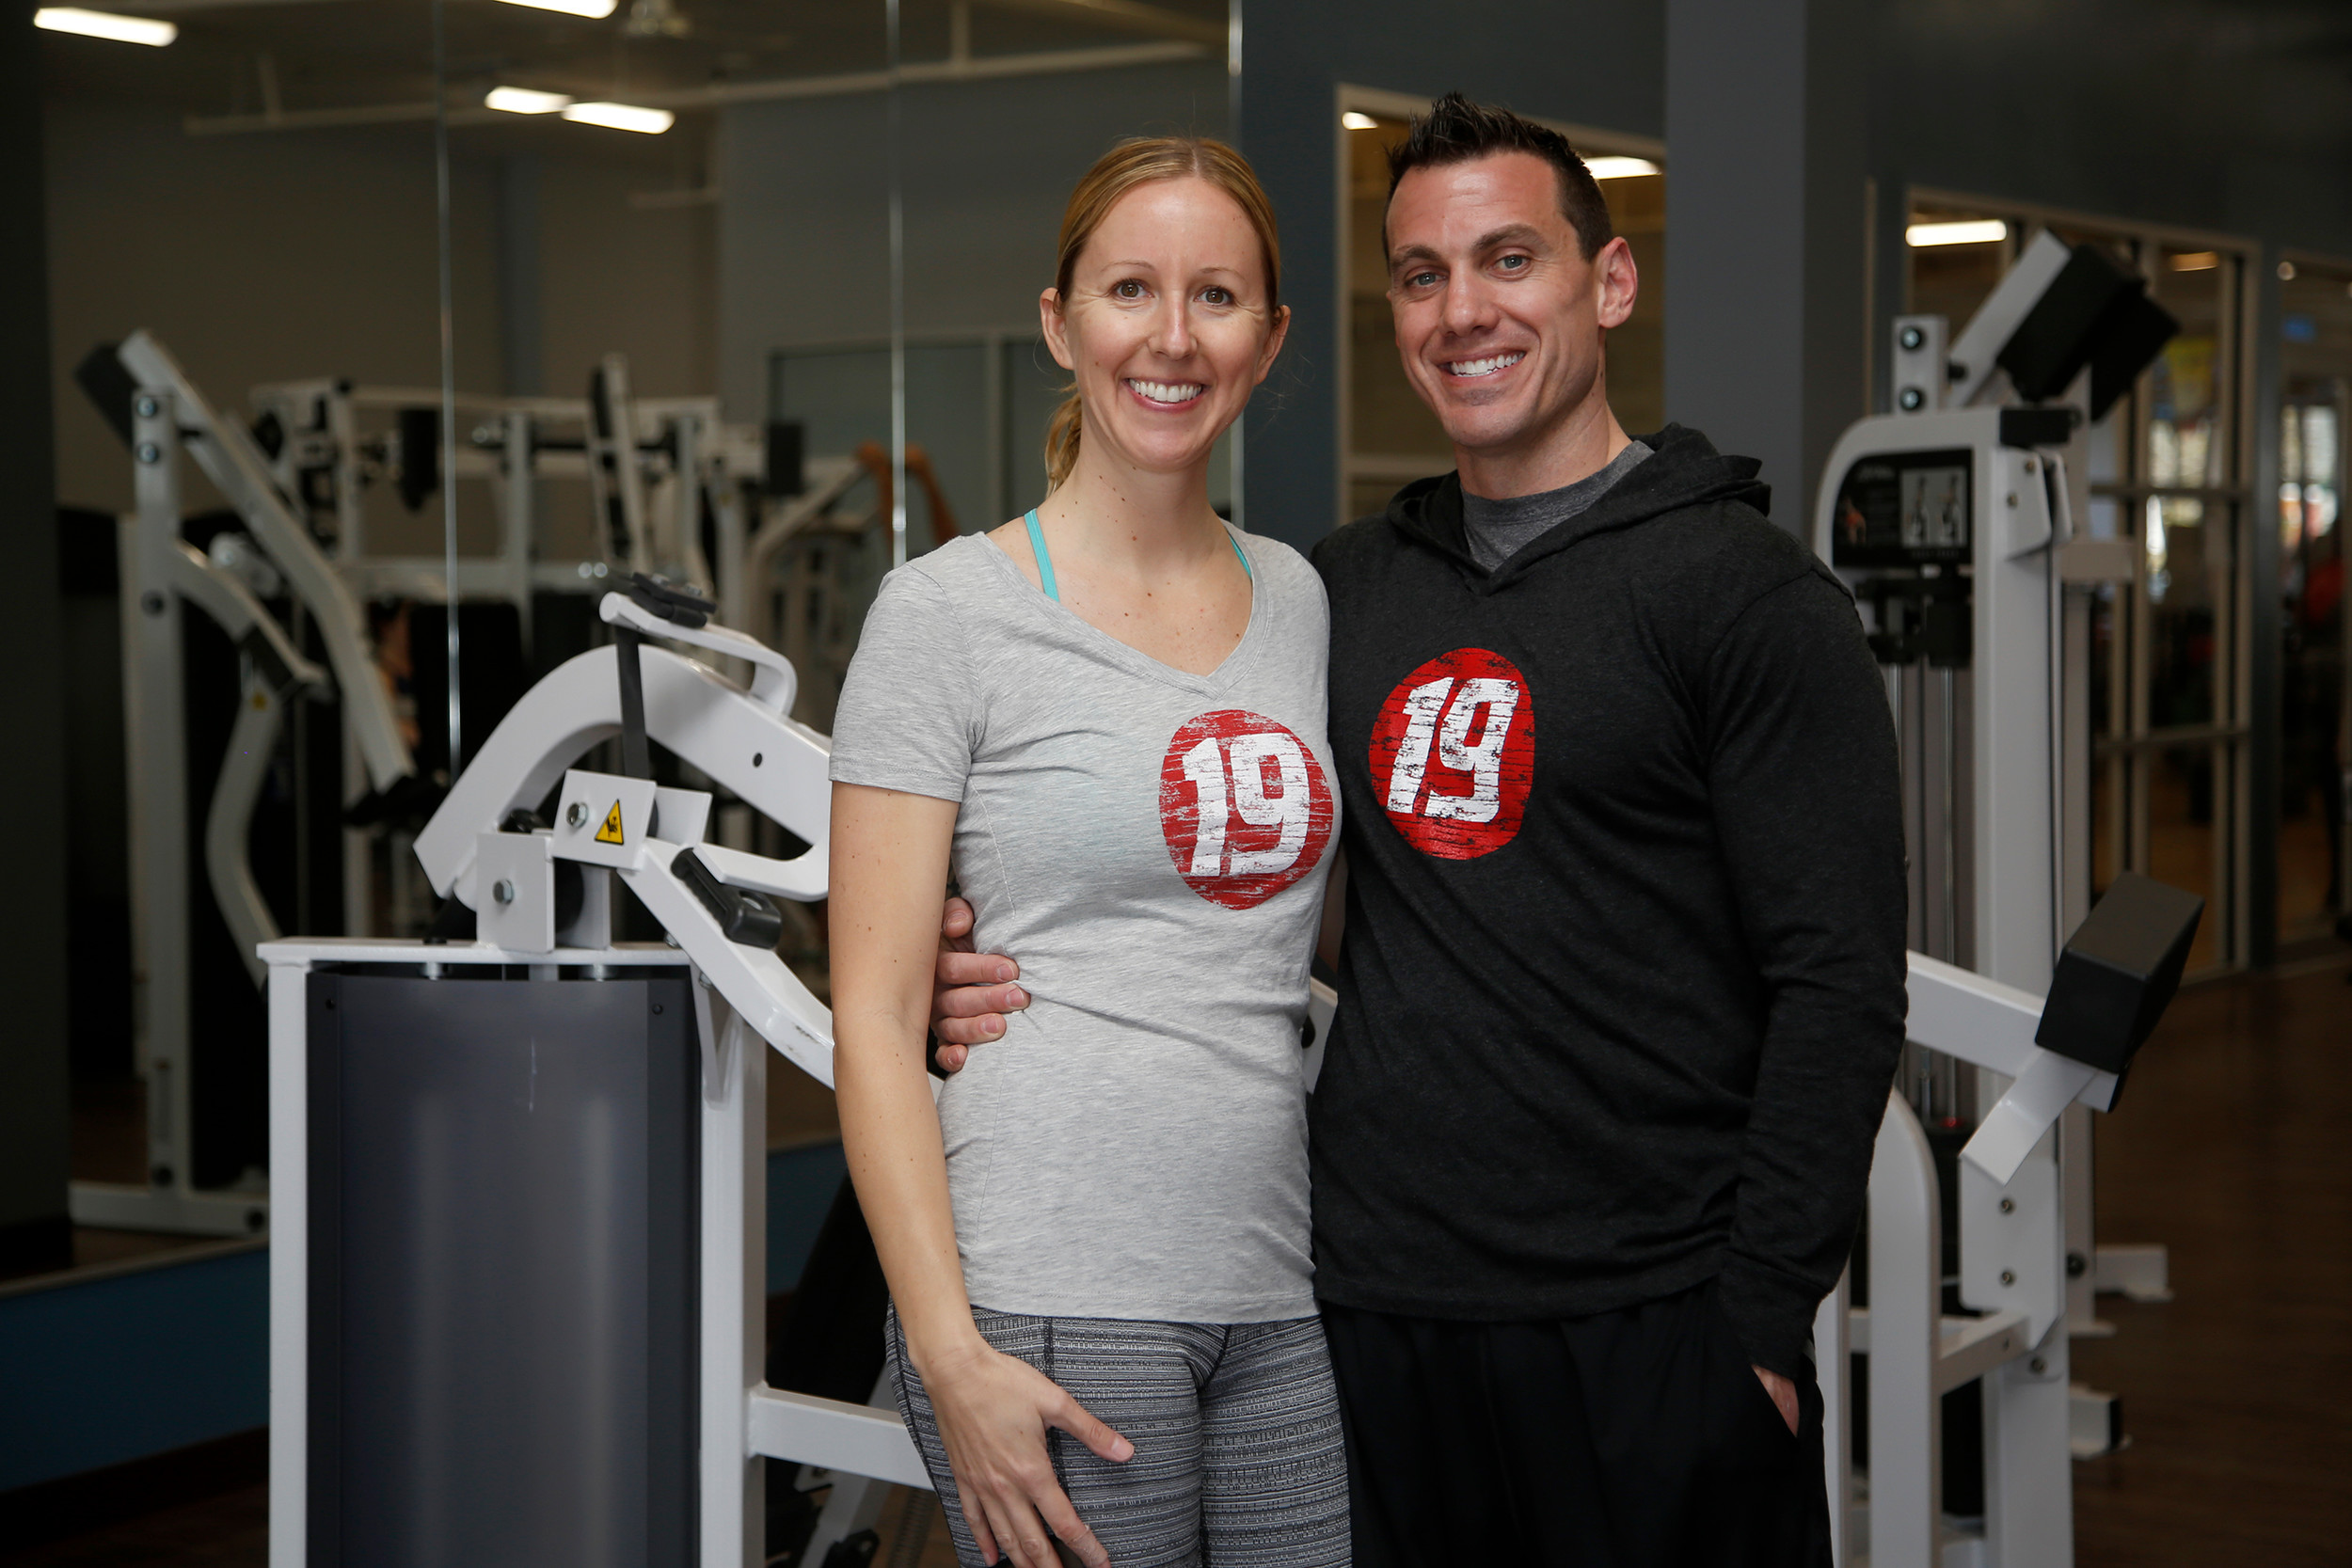 Fitness 19 owners Kelly and Michael Hobbs.